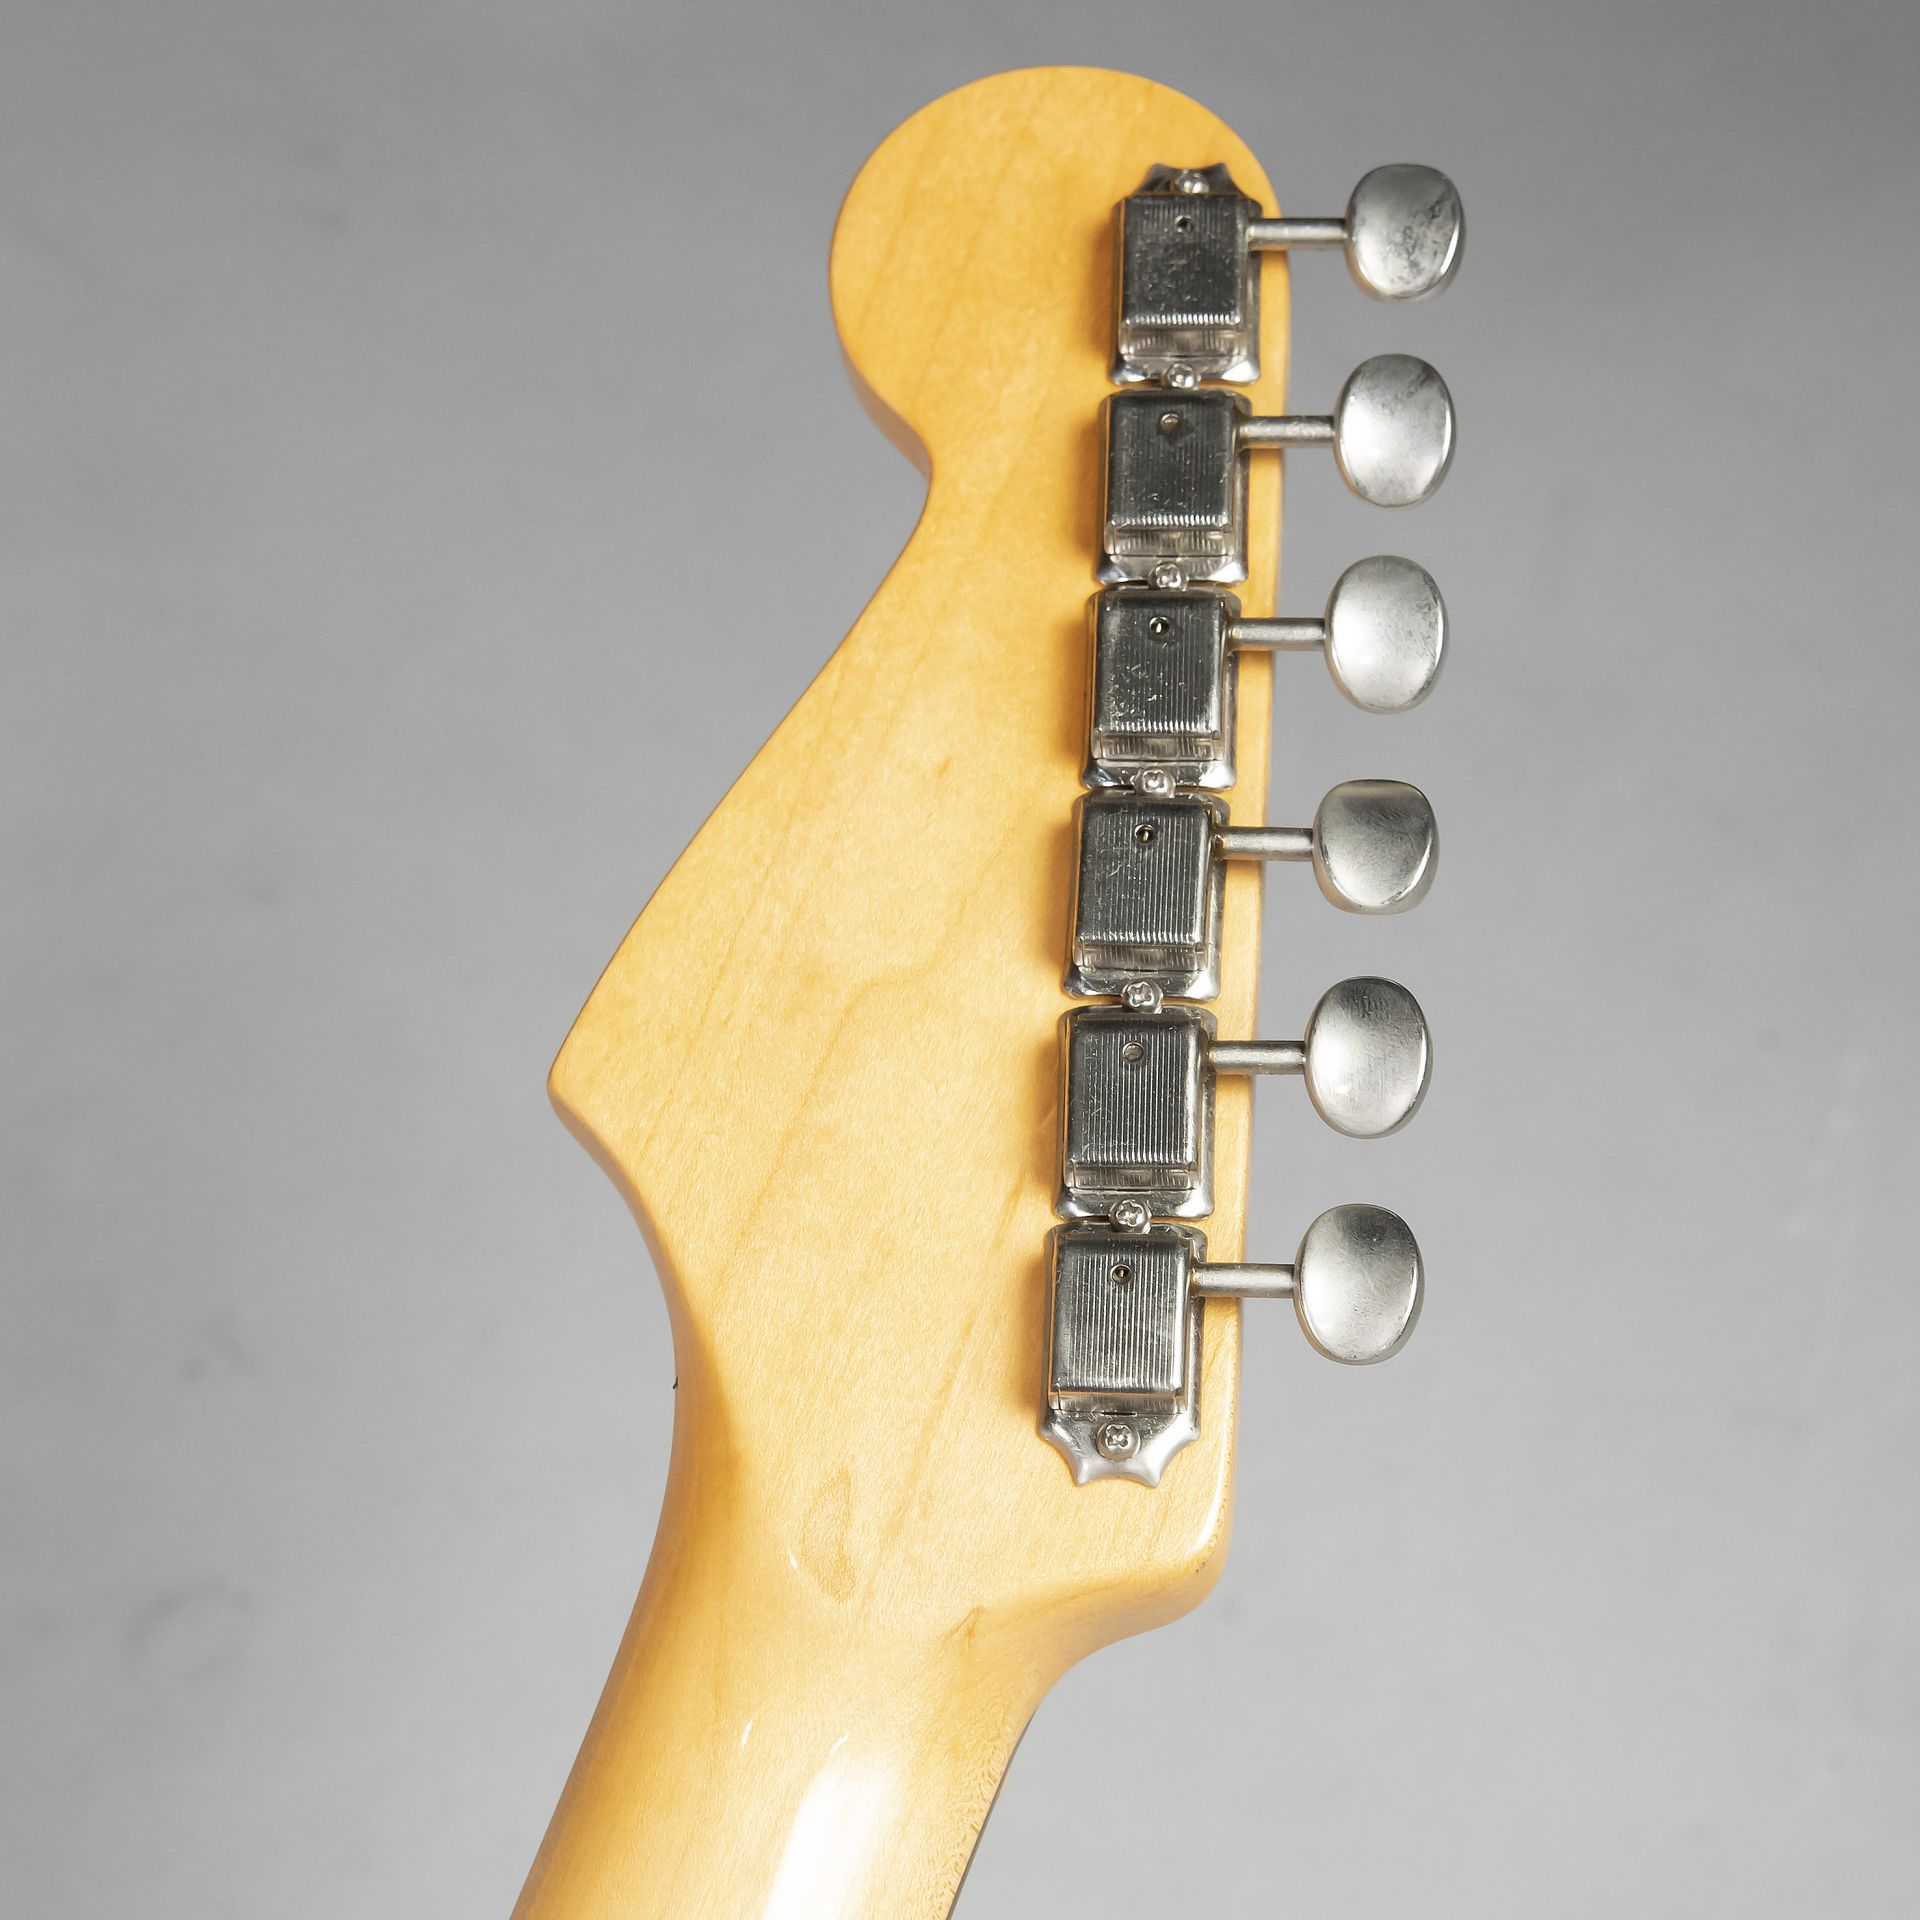 American Vintage 62 Stratocaster Thin Lacquerのヘッド裏-アップ画像